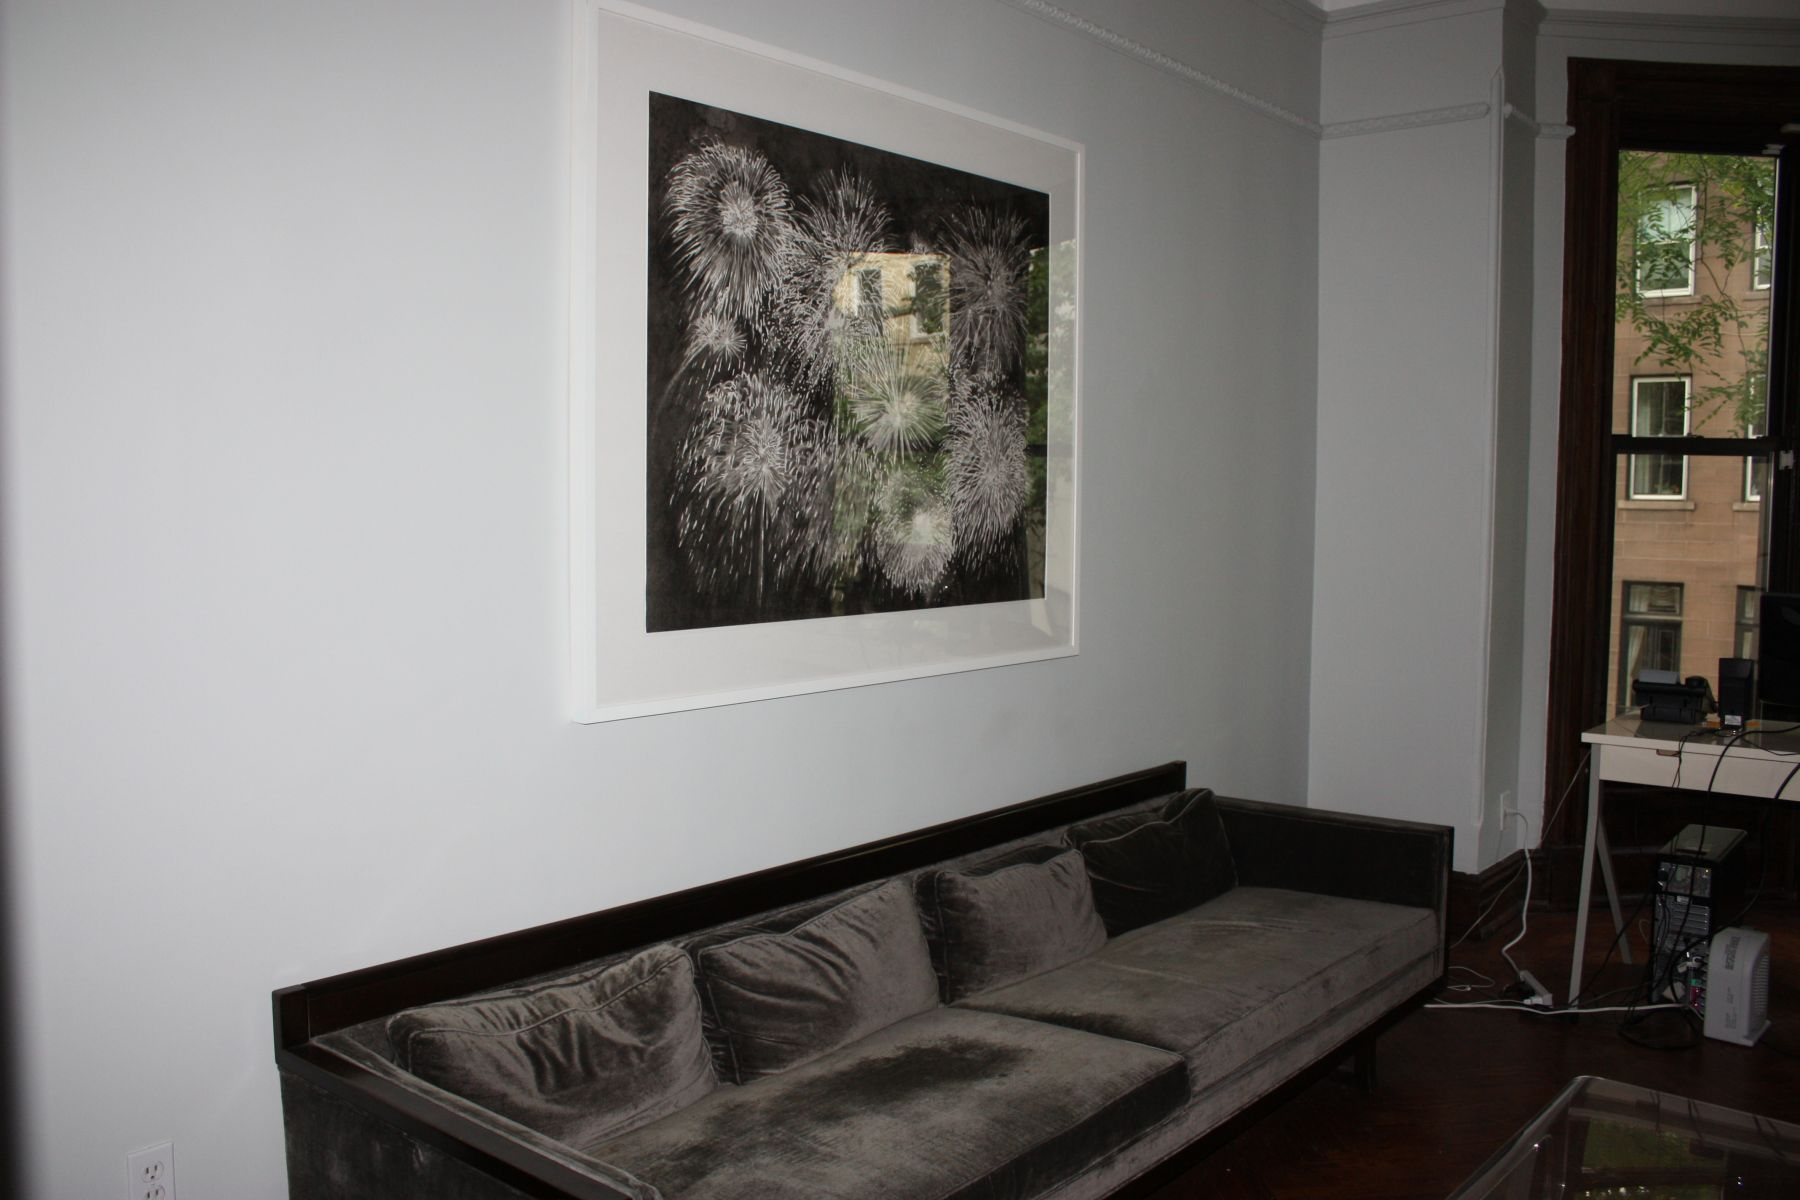 Installation of Works by Gallery Artists(Installation View), Marianne Boesky Gallery, Uptown, 2011